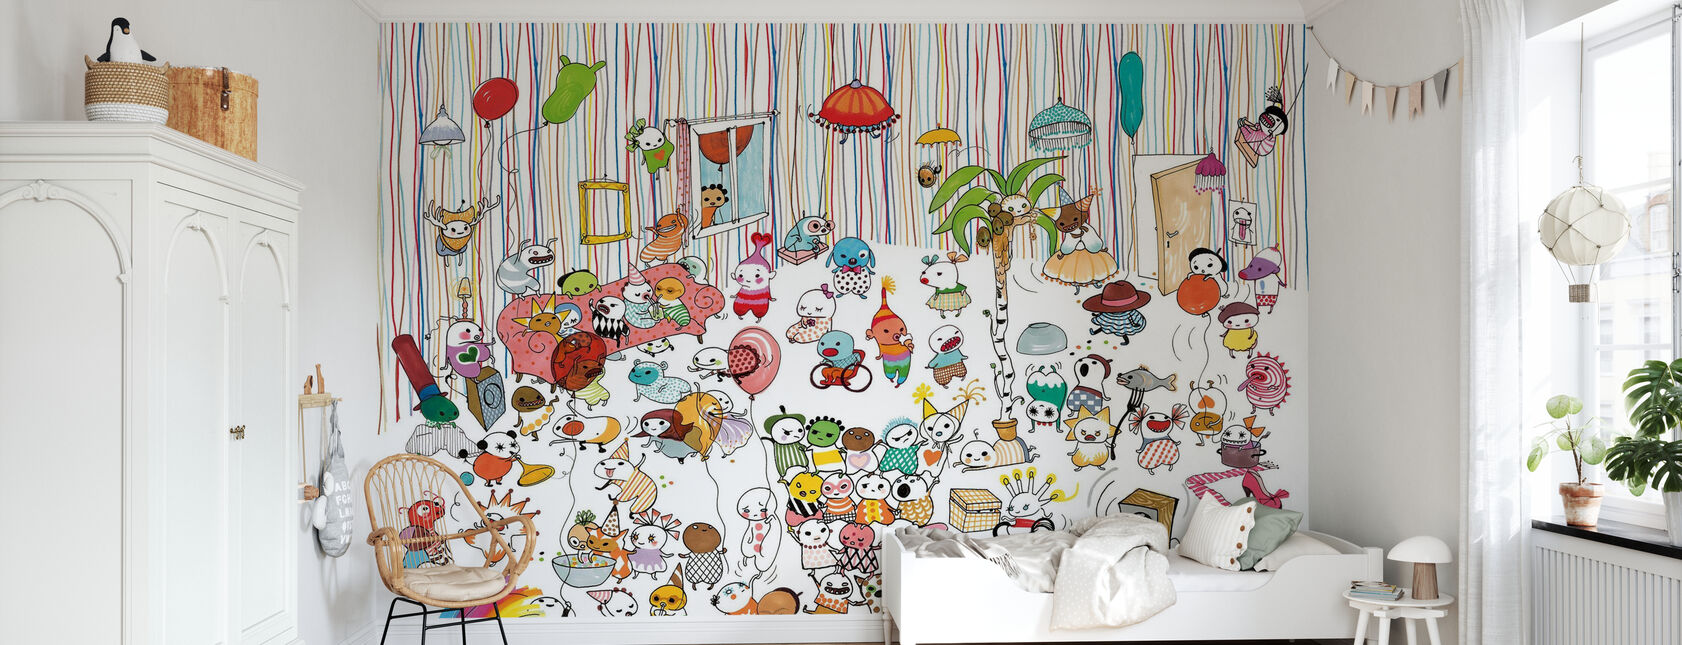 Motley Party 3 - Wallpaper - Kids Room